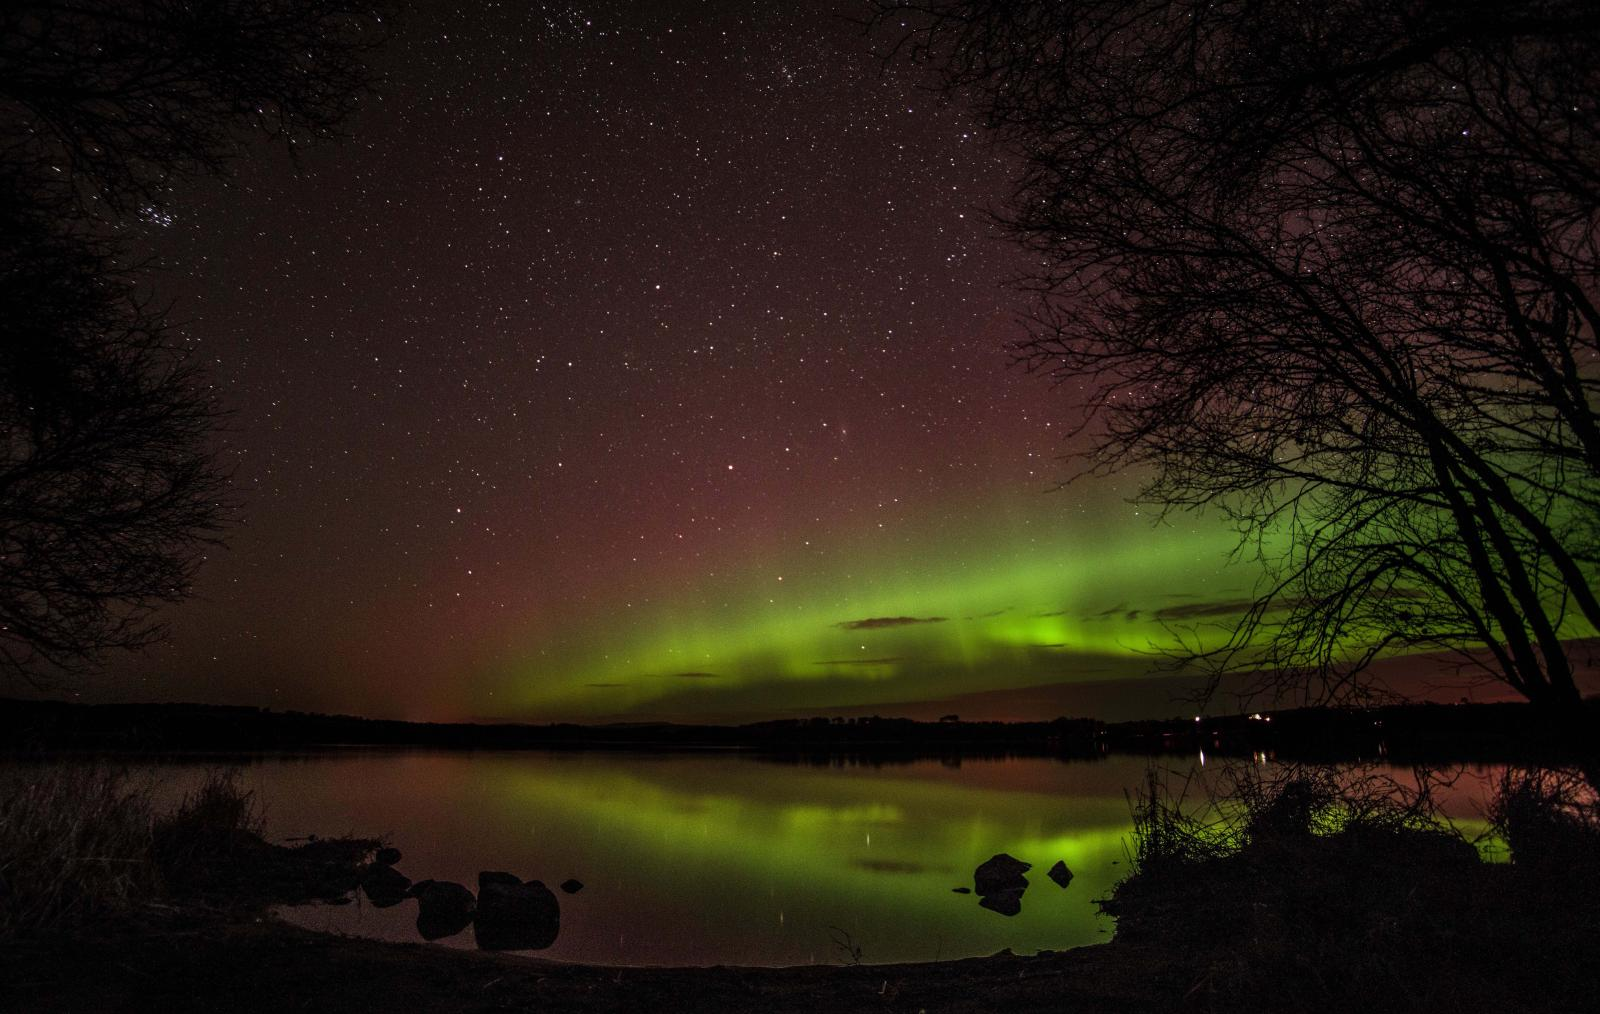 Aurora Viewing tips when conditions are hopeful